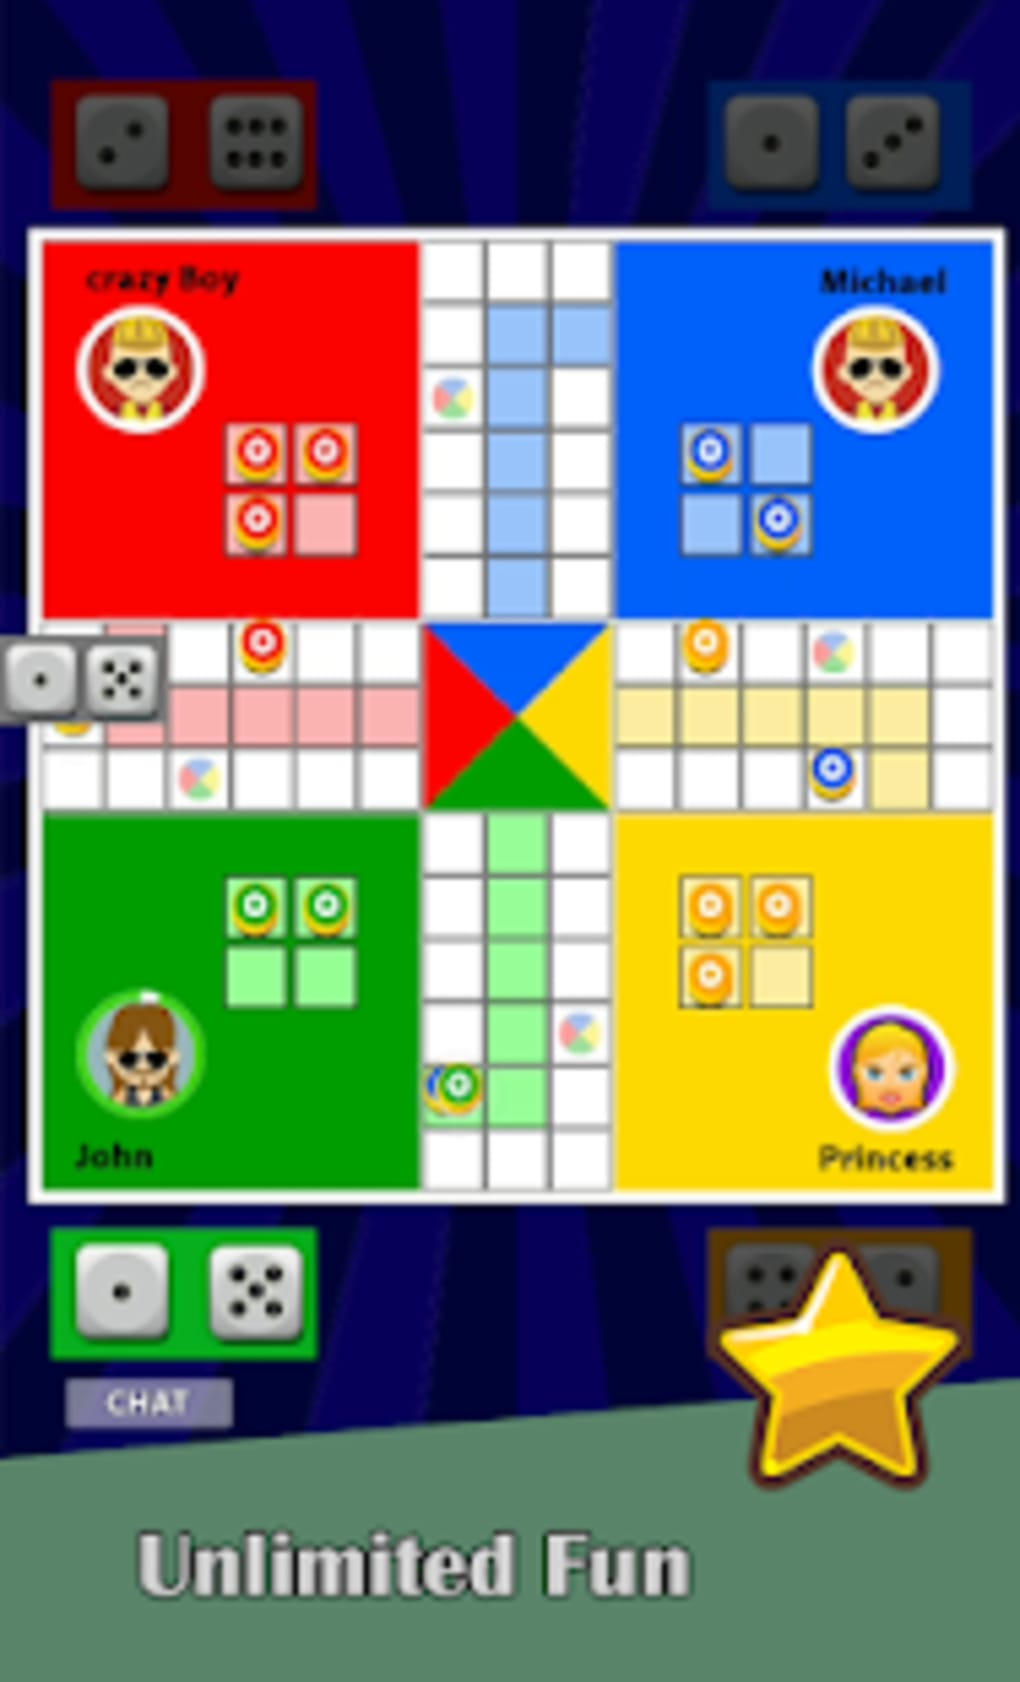 Dice World - 6 Fun Dice Games - Apps on Google Play